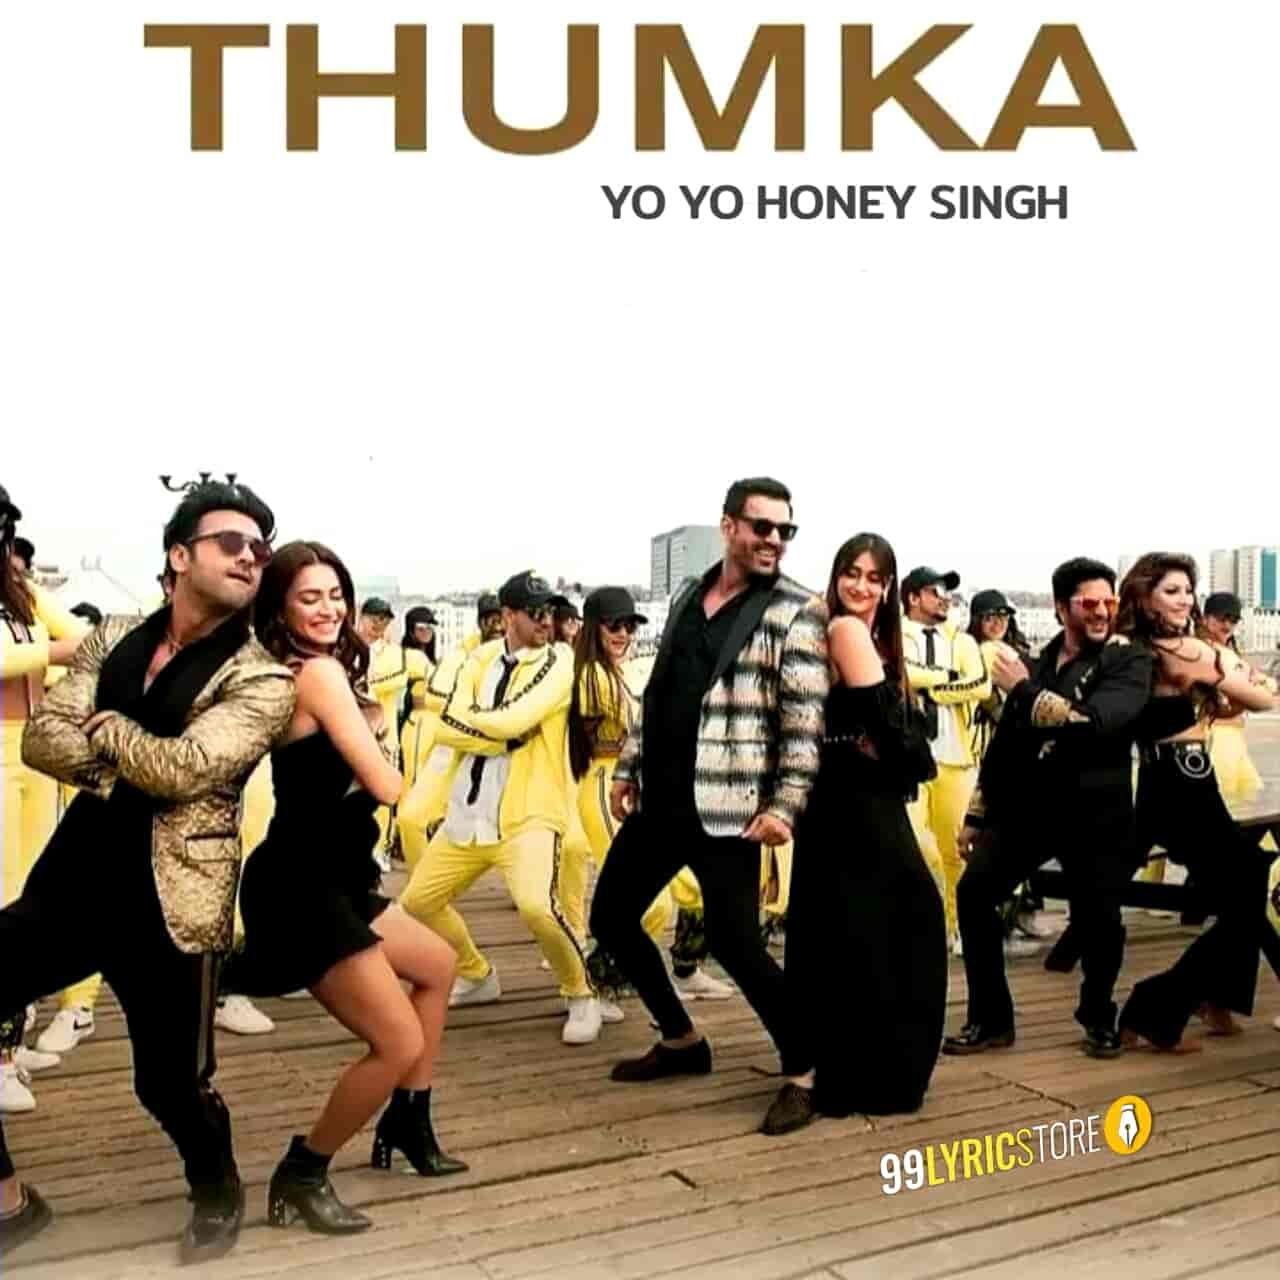 Thumka Lyrics Images